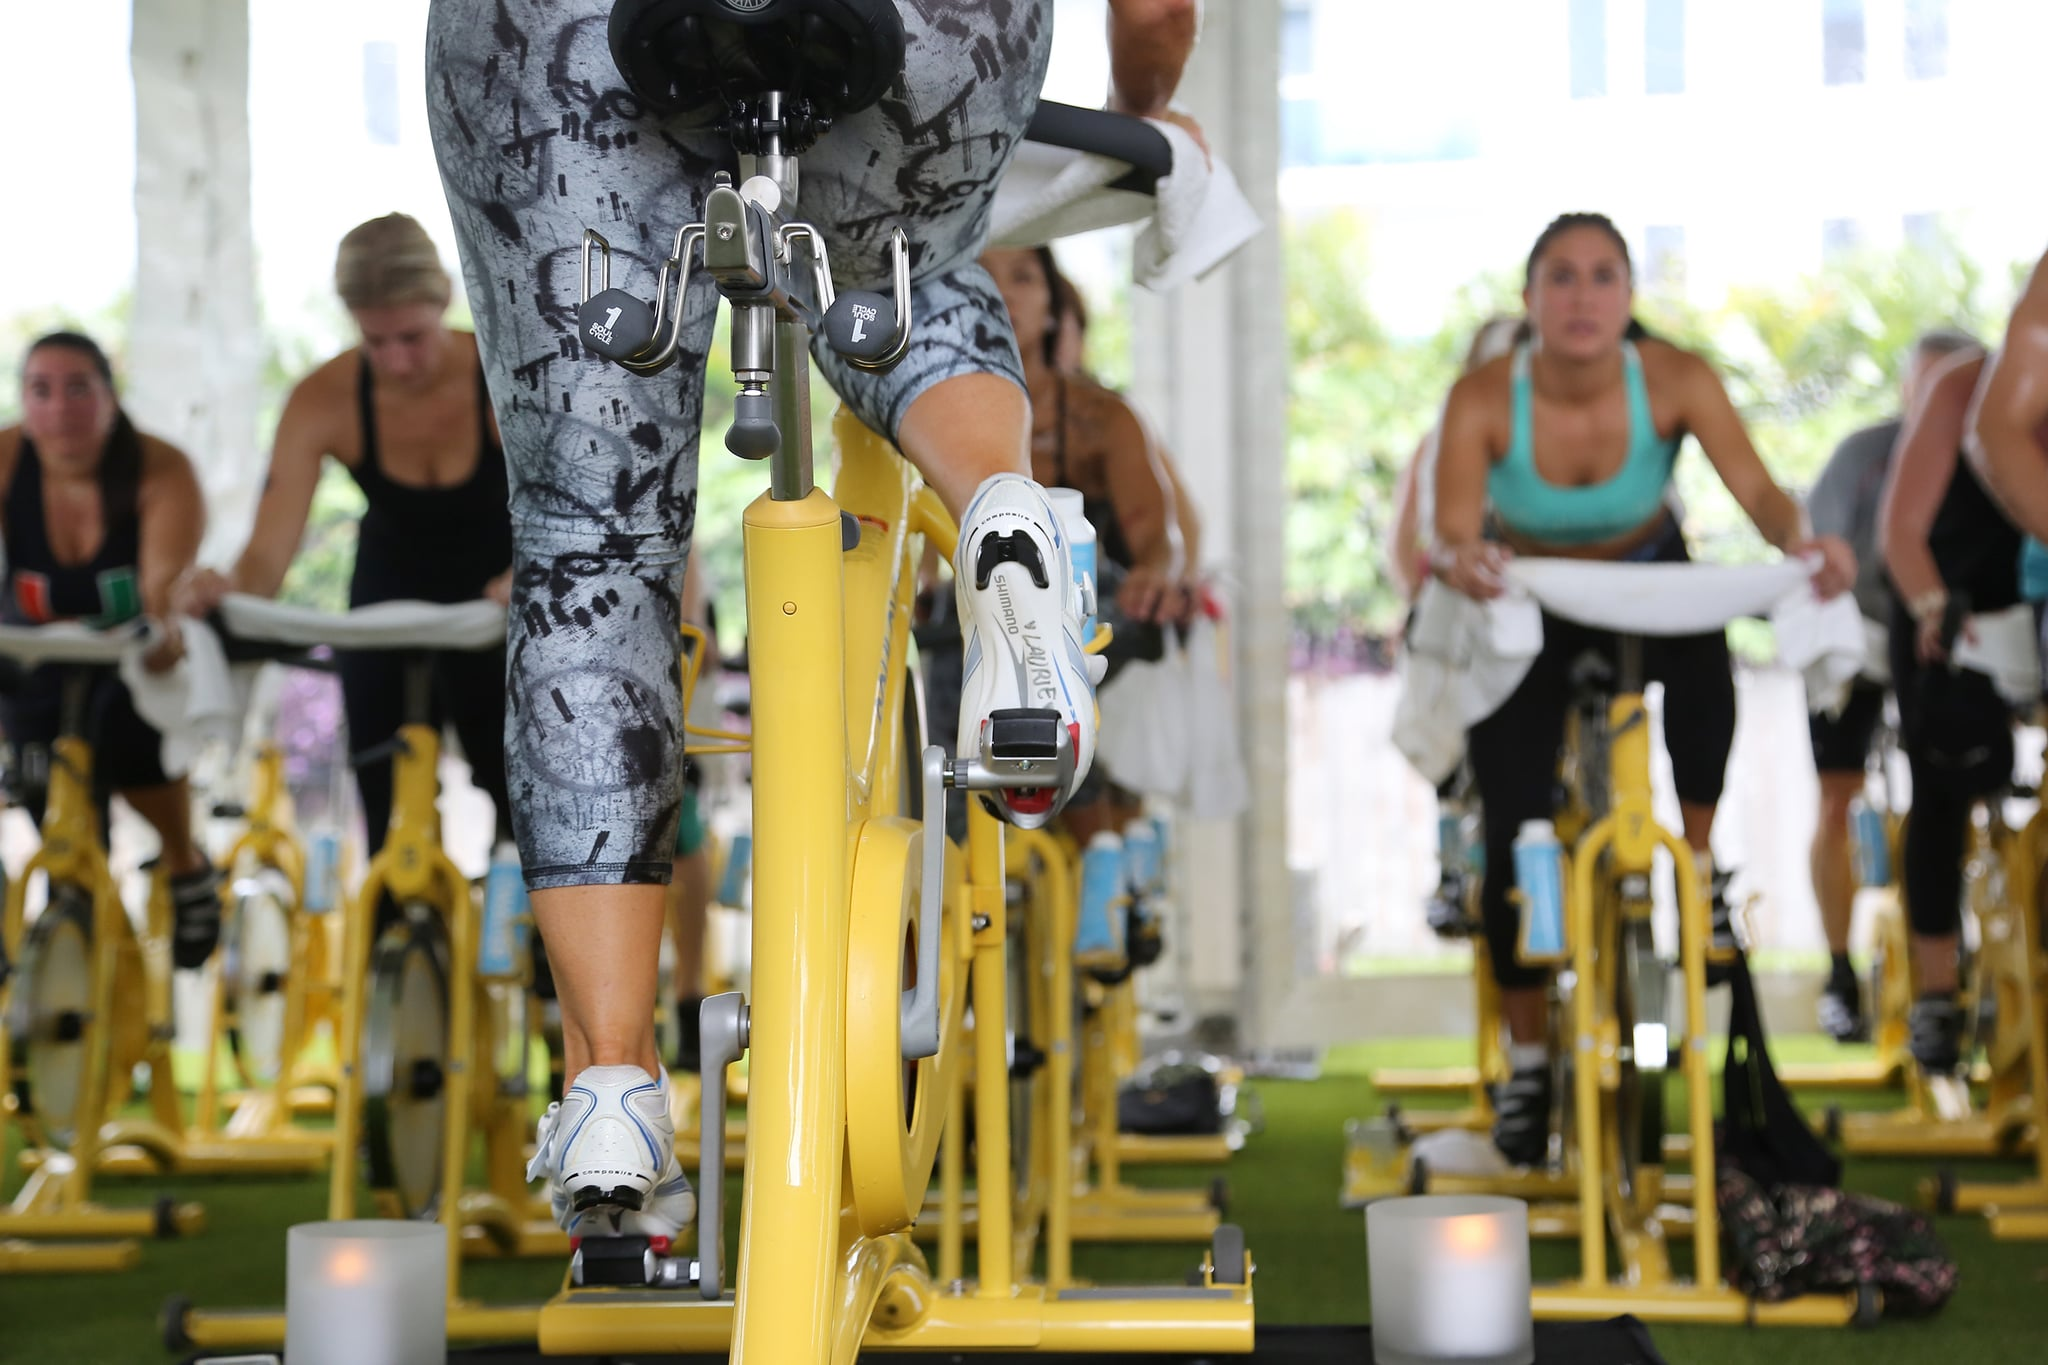 How to Prevent Injury in Indoor Cycling Class